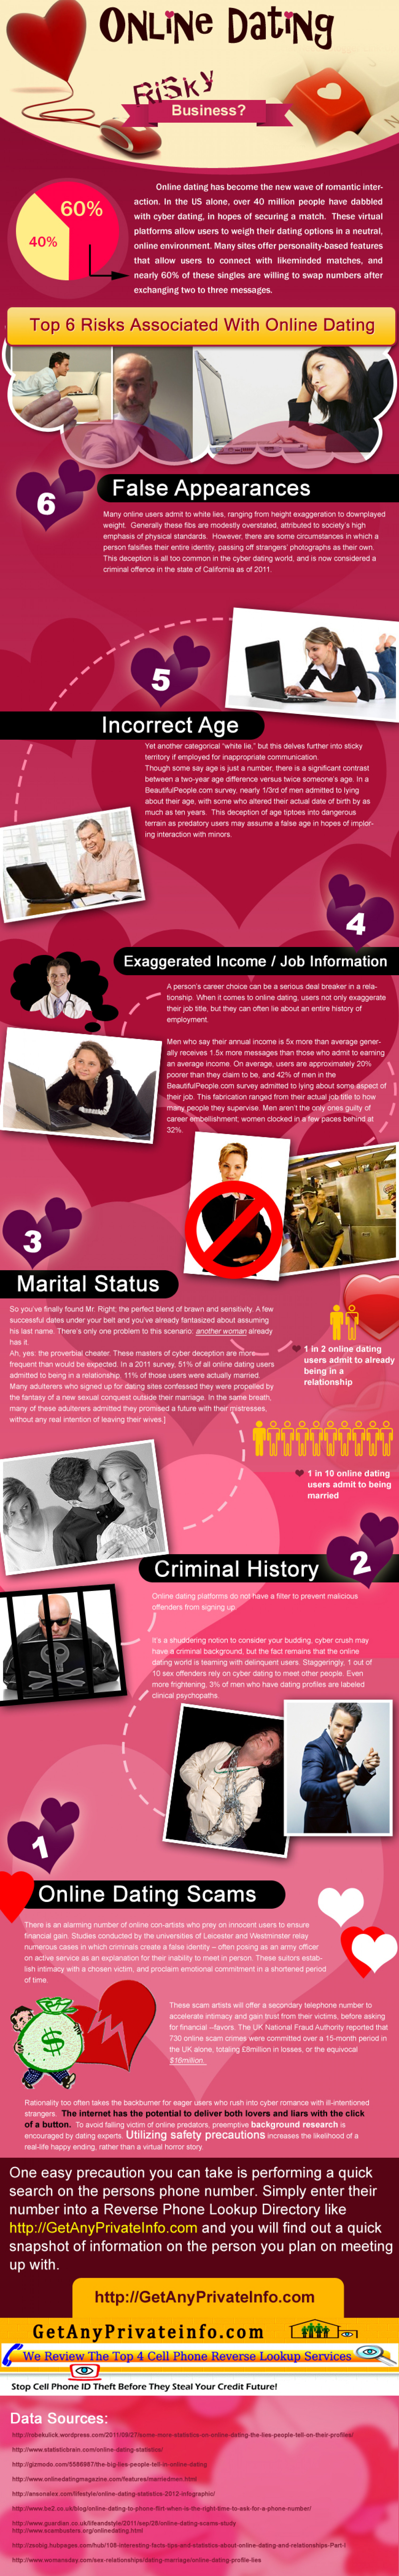 Online Dating Infographic